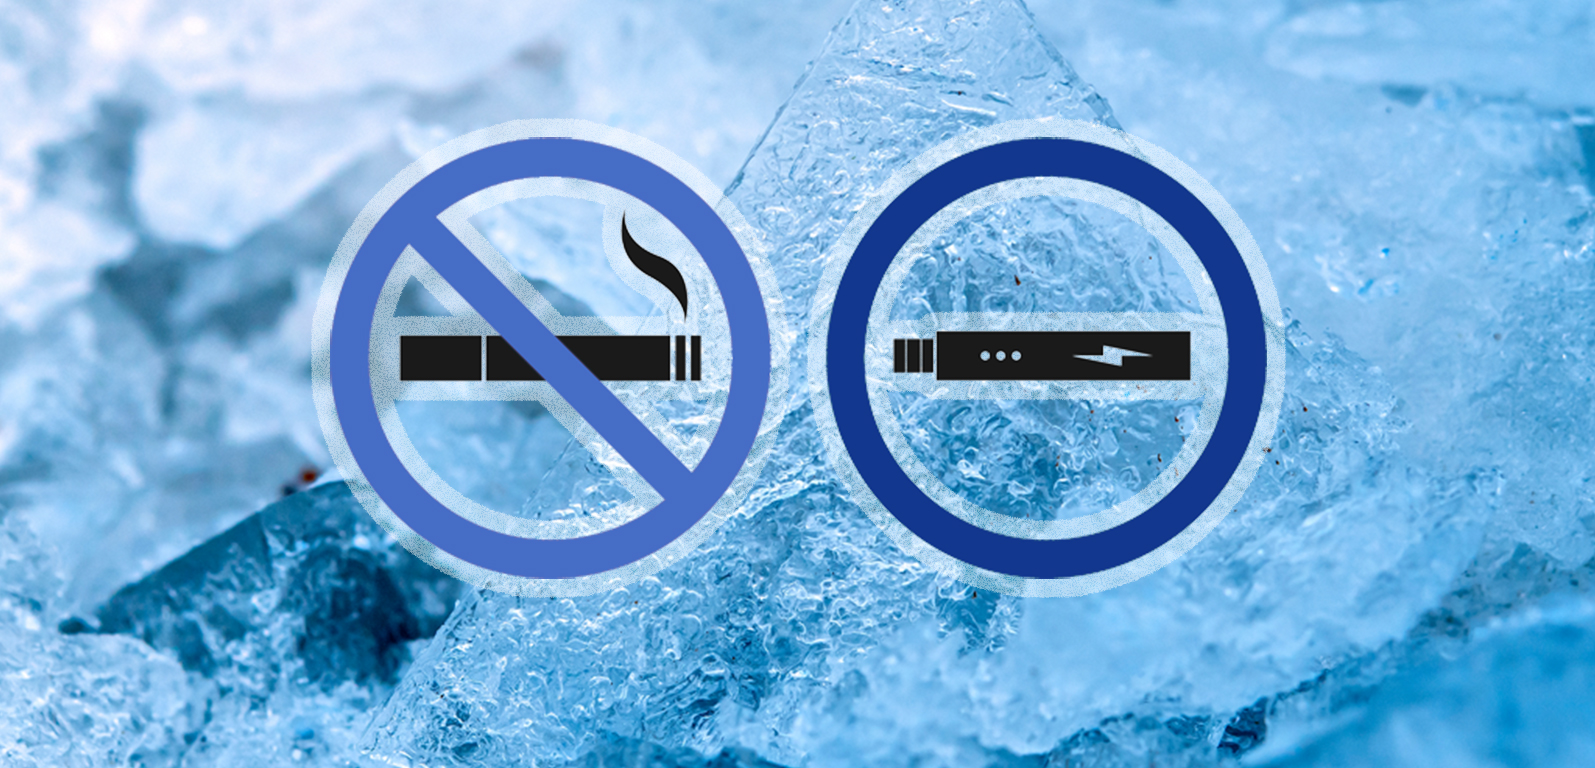 The Menthol Cigarette Ban  - What you need to know.